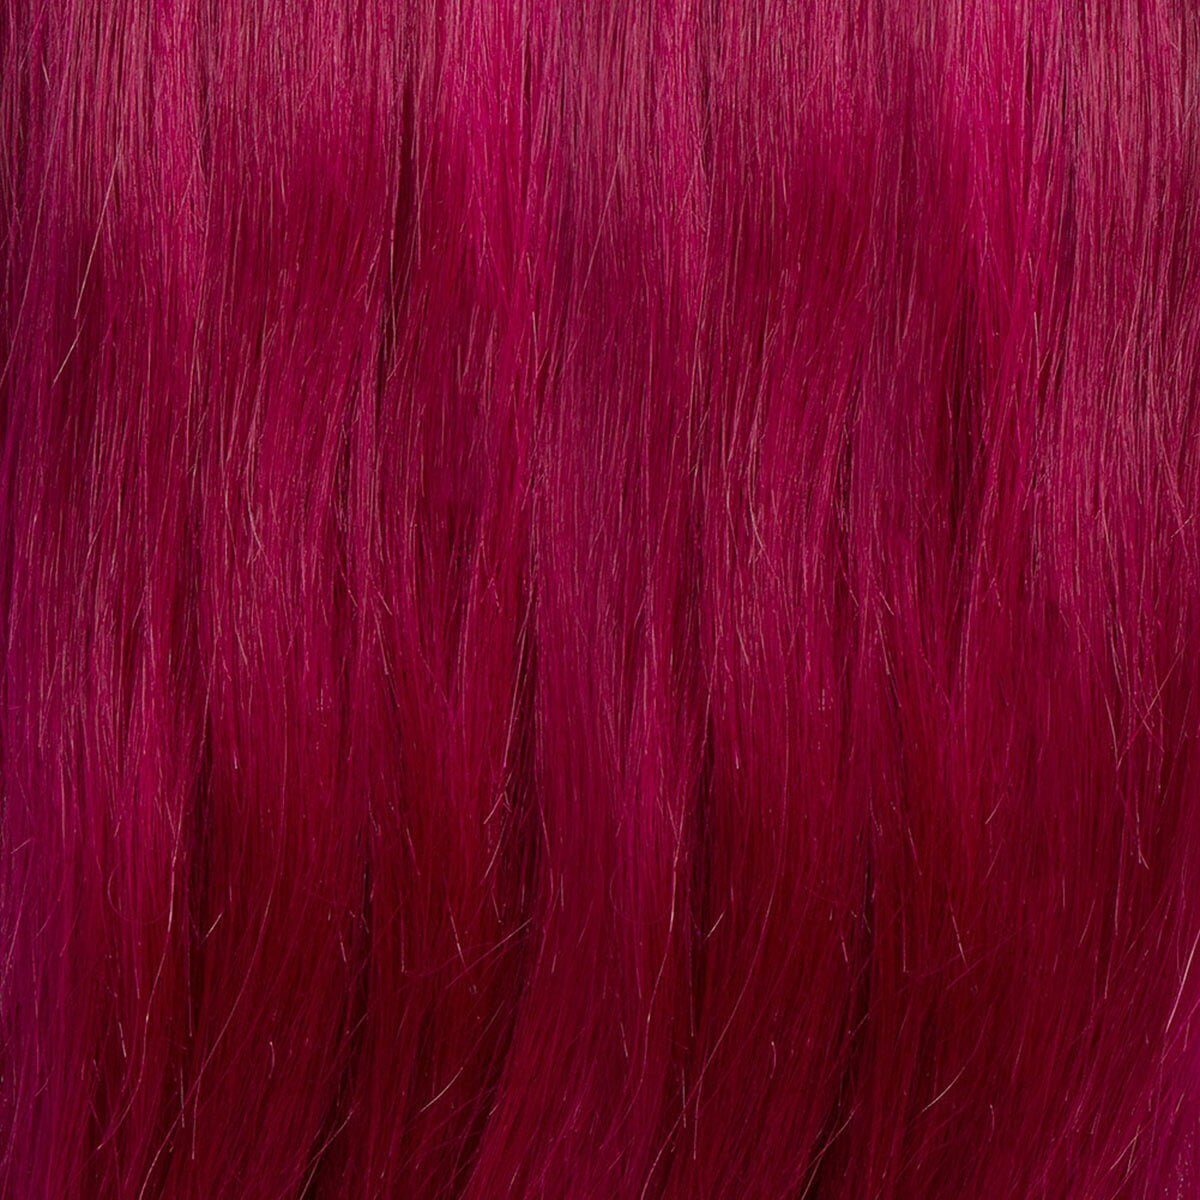 manic panic high voltage rosa hårfarge 118 ml fuschia shock classic swatch 5028